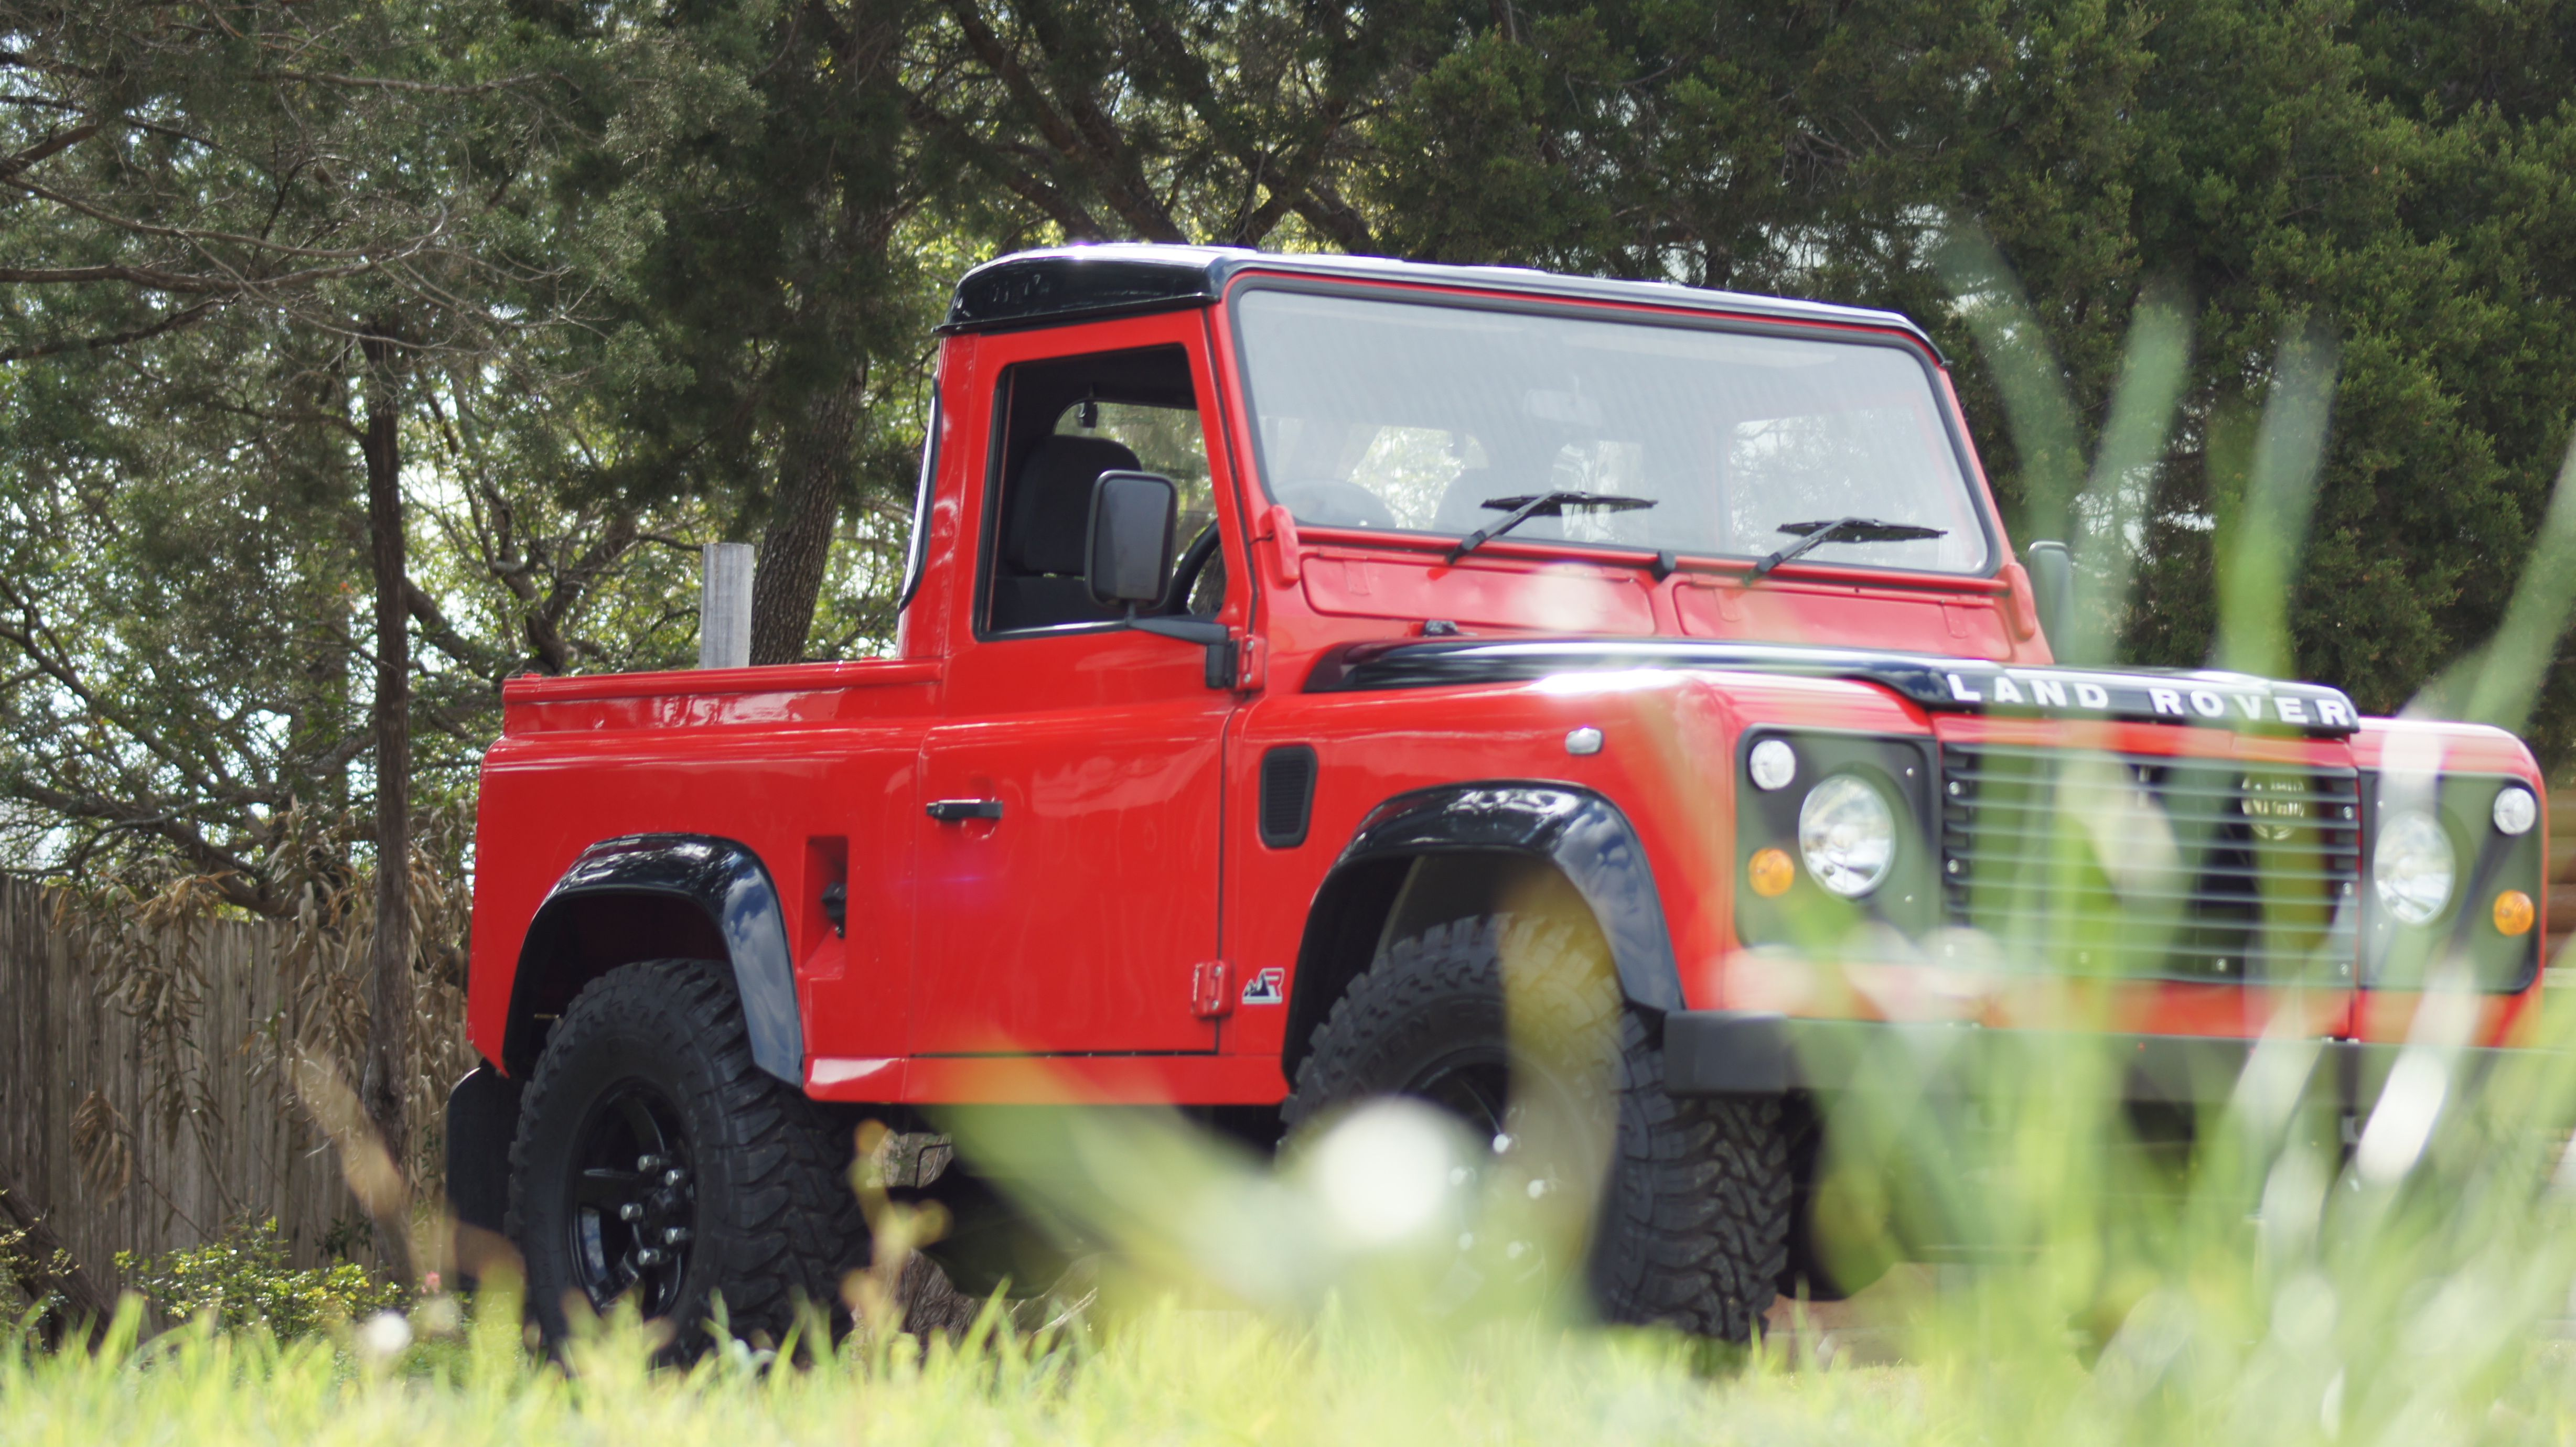 1985 Land Rover Defender 90 pick up for sale in Austin TX Right